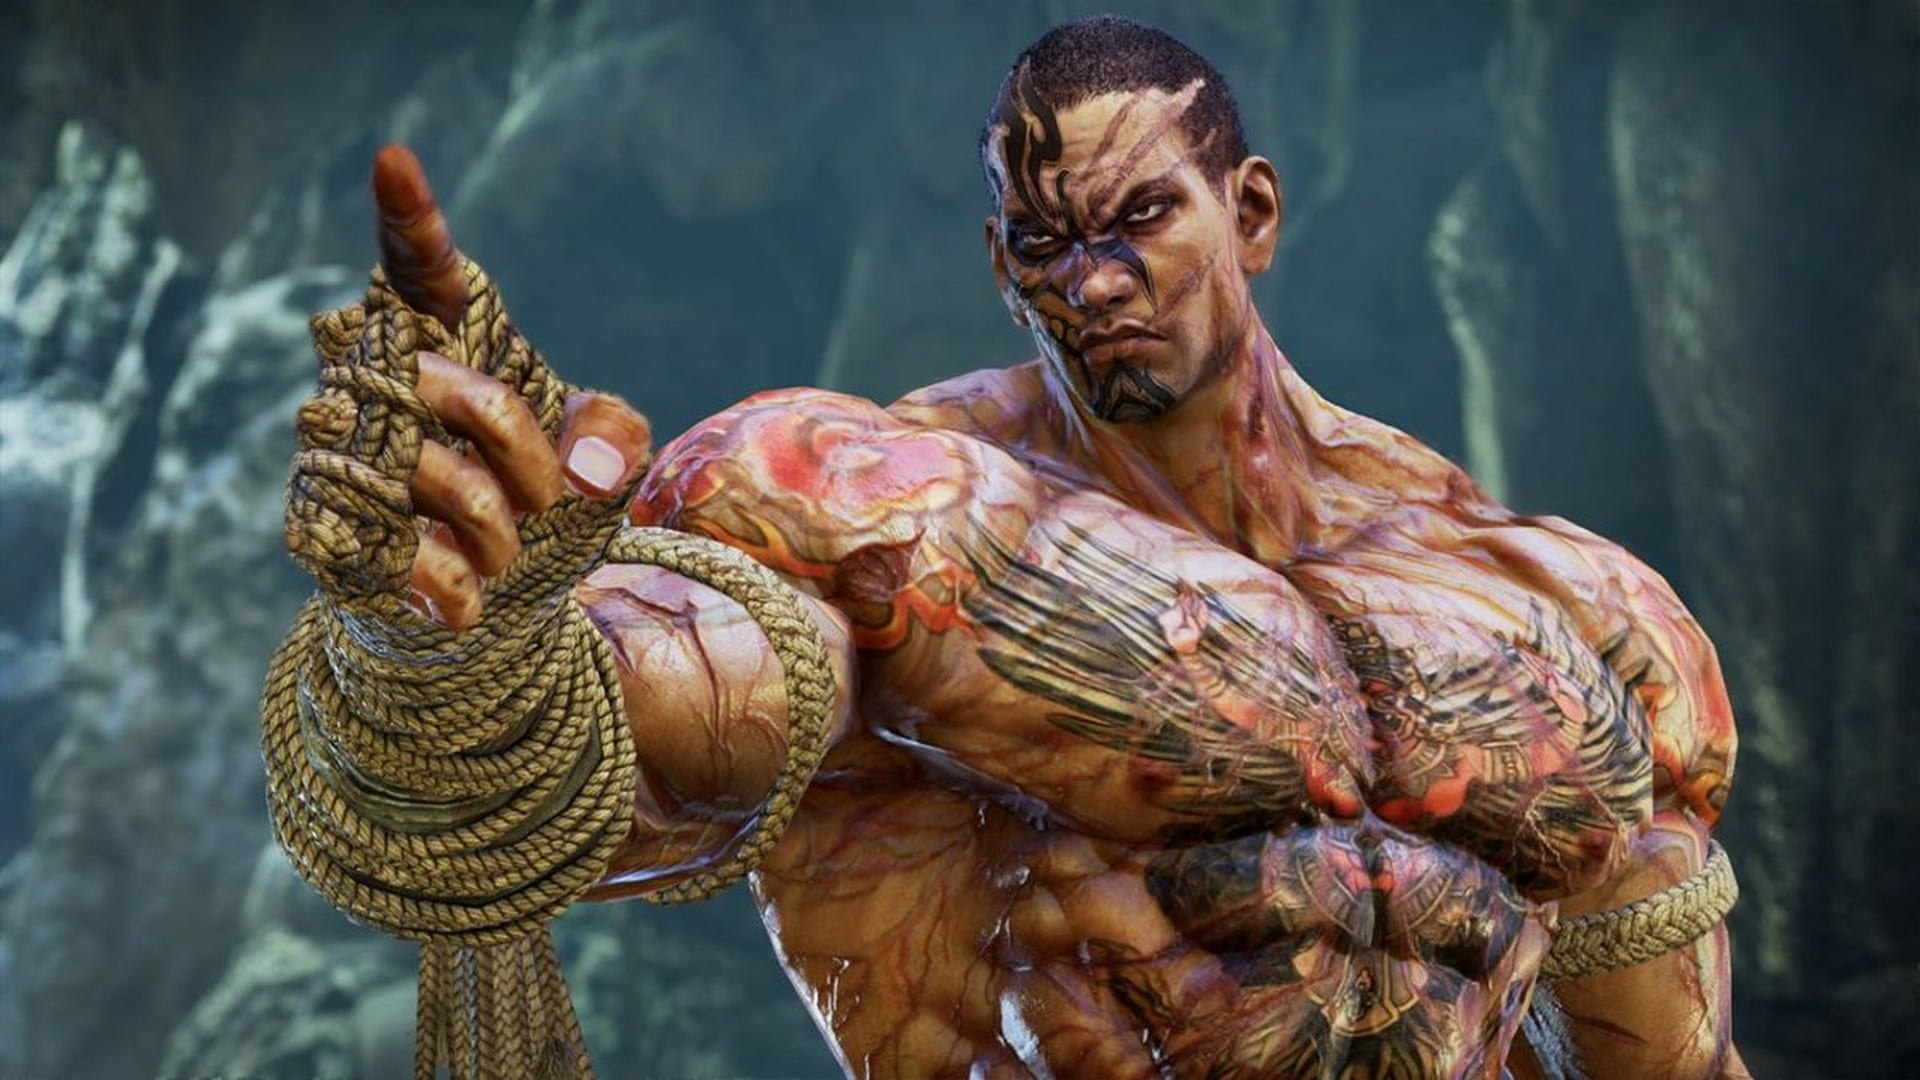 Fahkumram's Release Date Announced In A New TEKKEN 7 Trailer